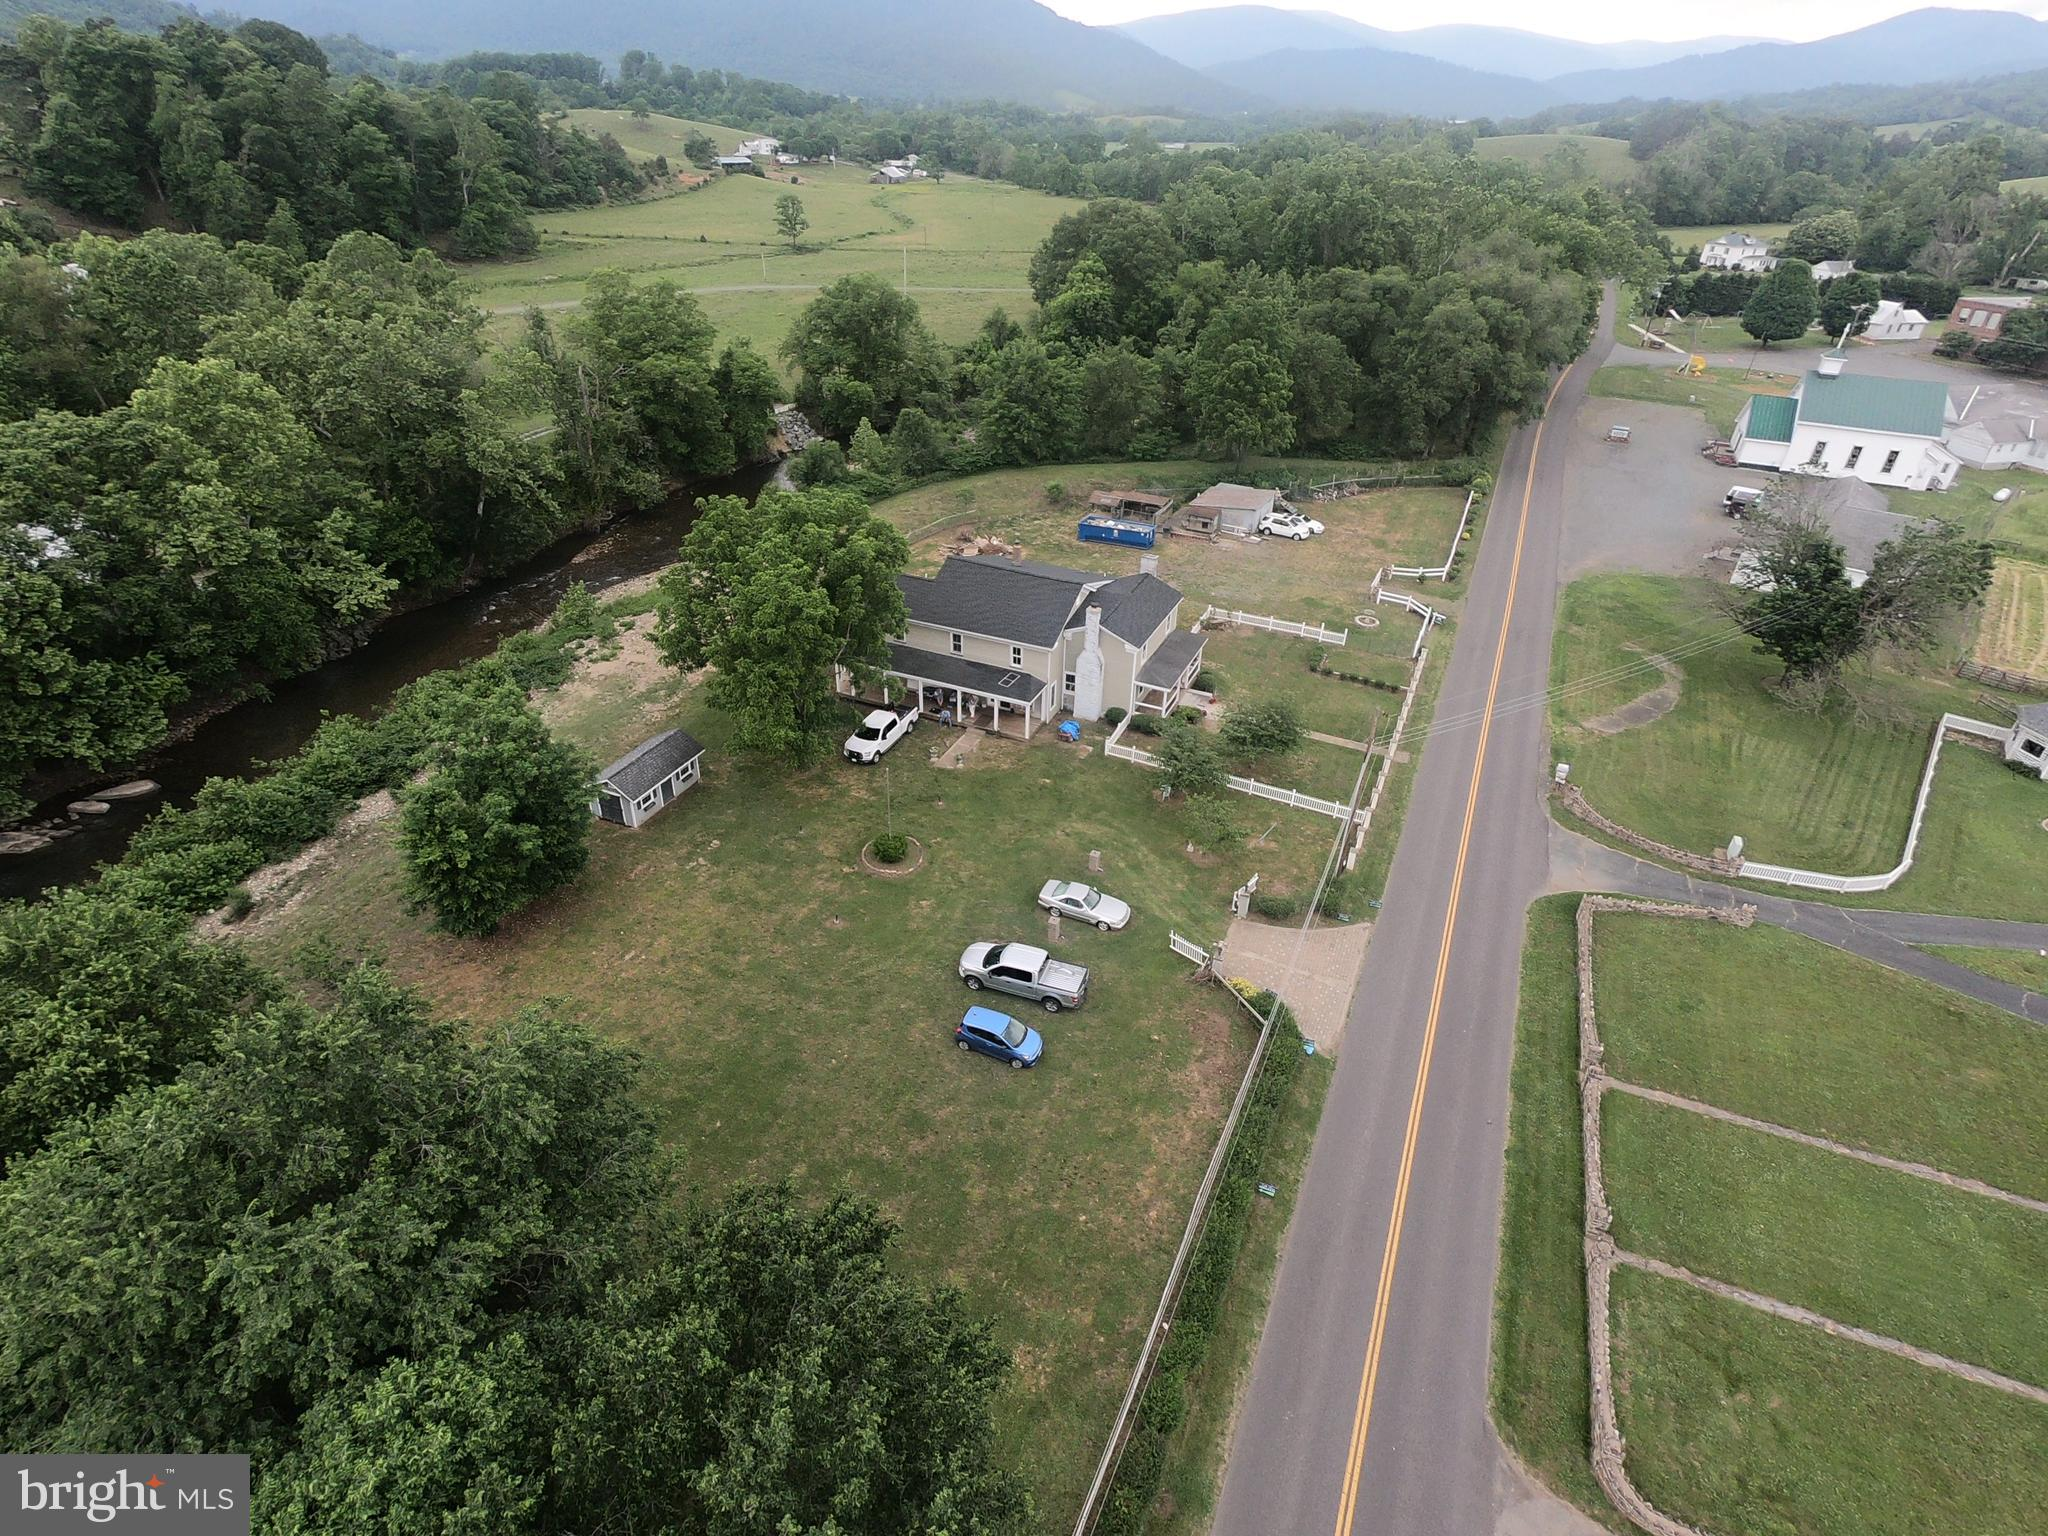 1027 OLD BLUE RIDGE TURNPIKE, MADISON, VA 22727